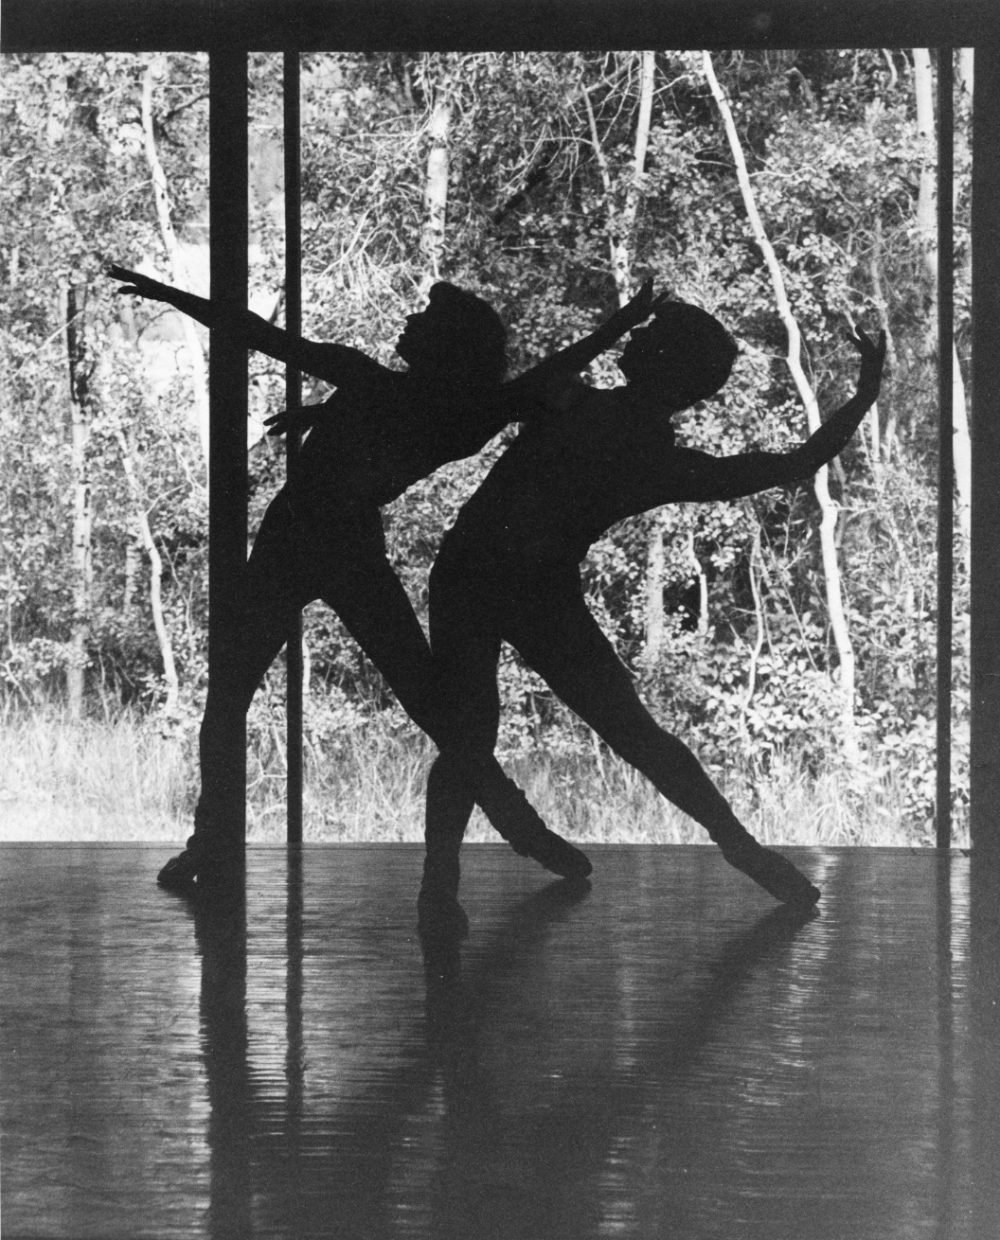 Since its inception, Perry-Mansfield has served as an oasis in the wilderness for those interested in the performing arts, including dance.